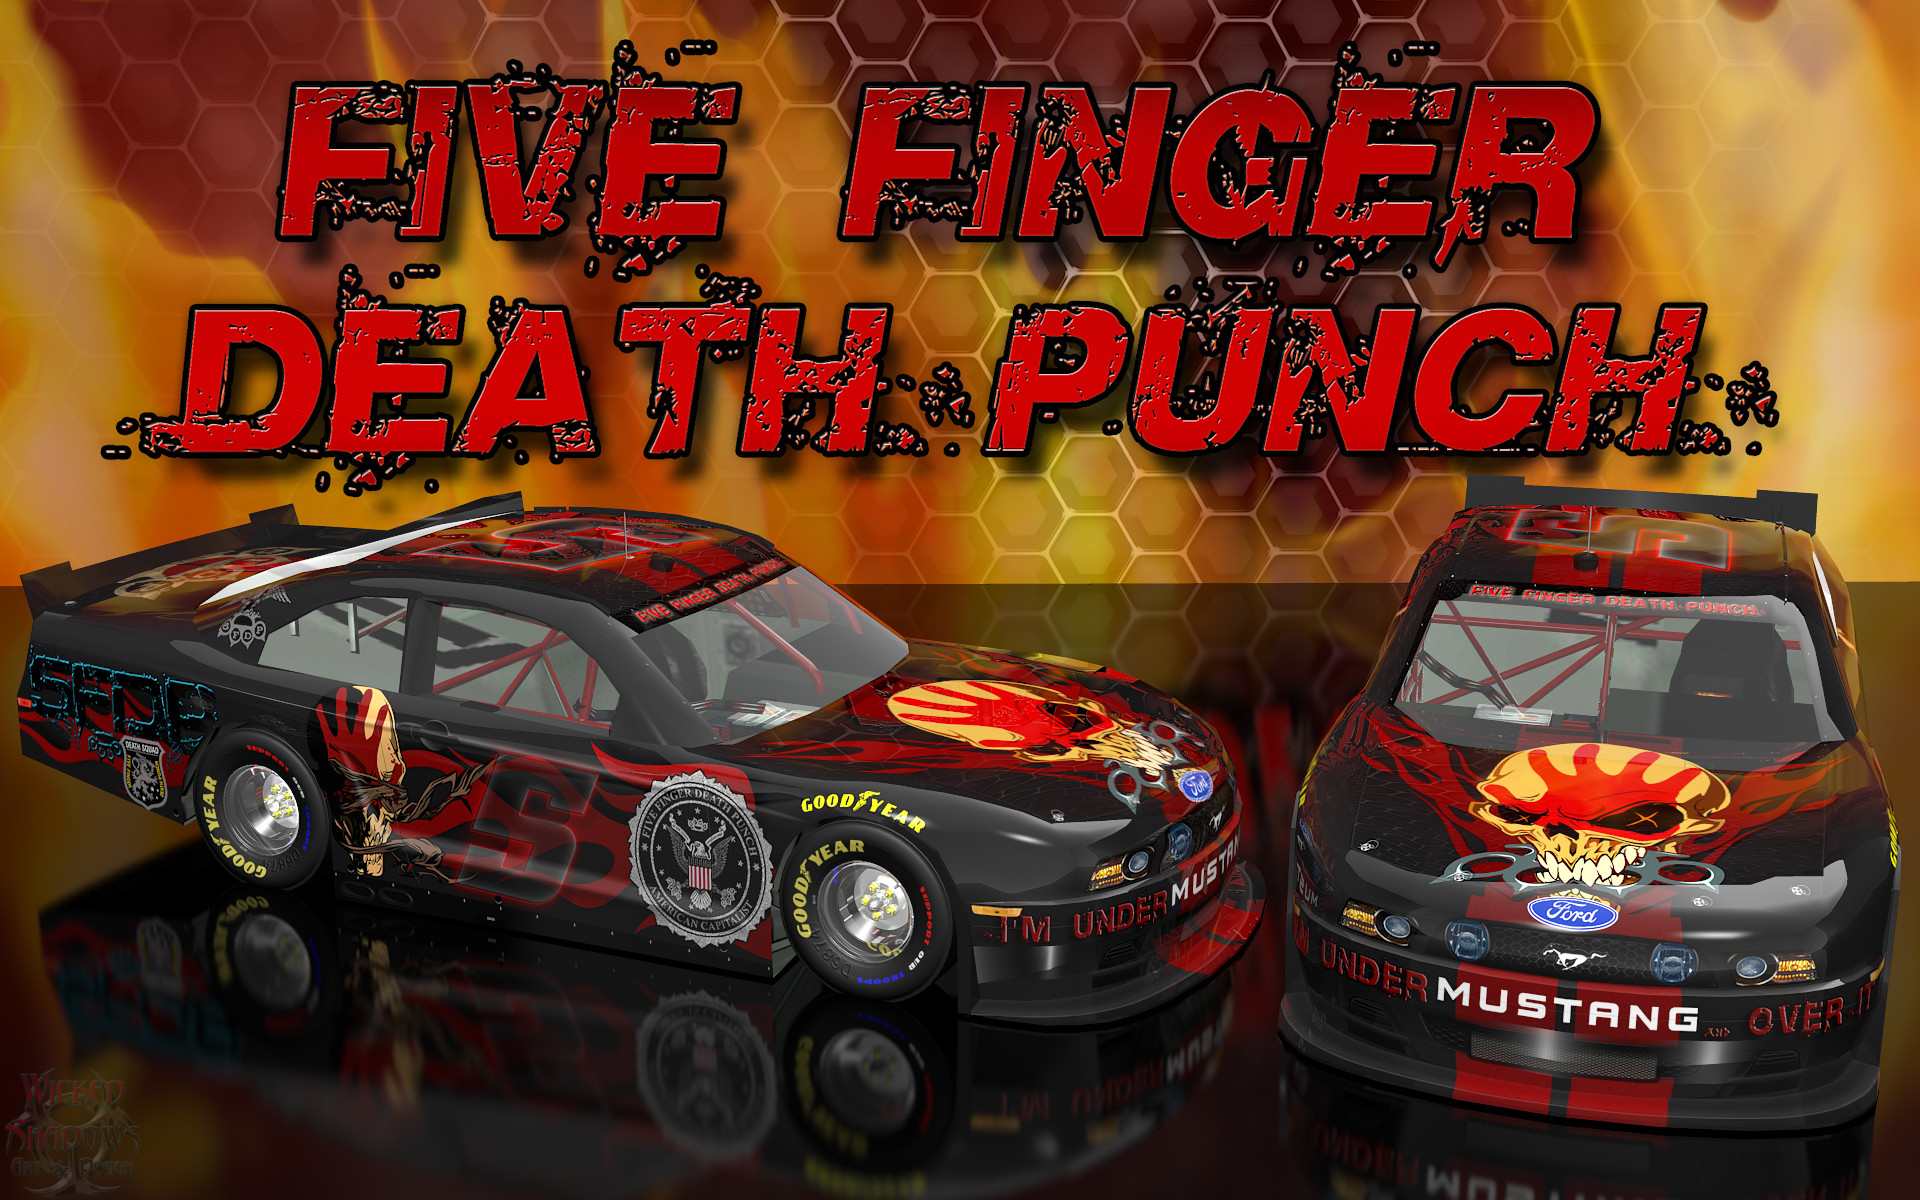 1920x1200 Five Finger Death Punch Wicked Ford Mustang Wallpaper